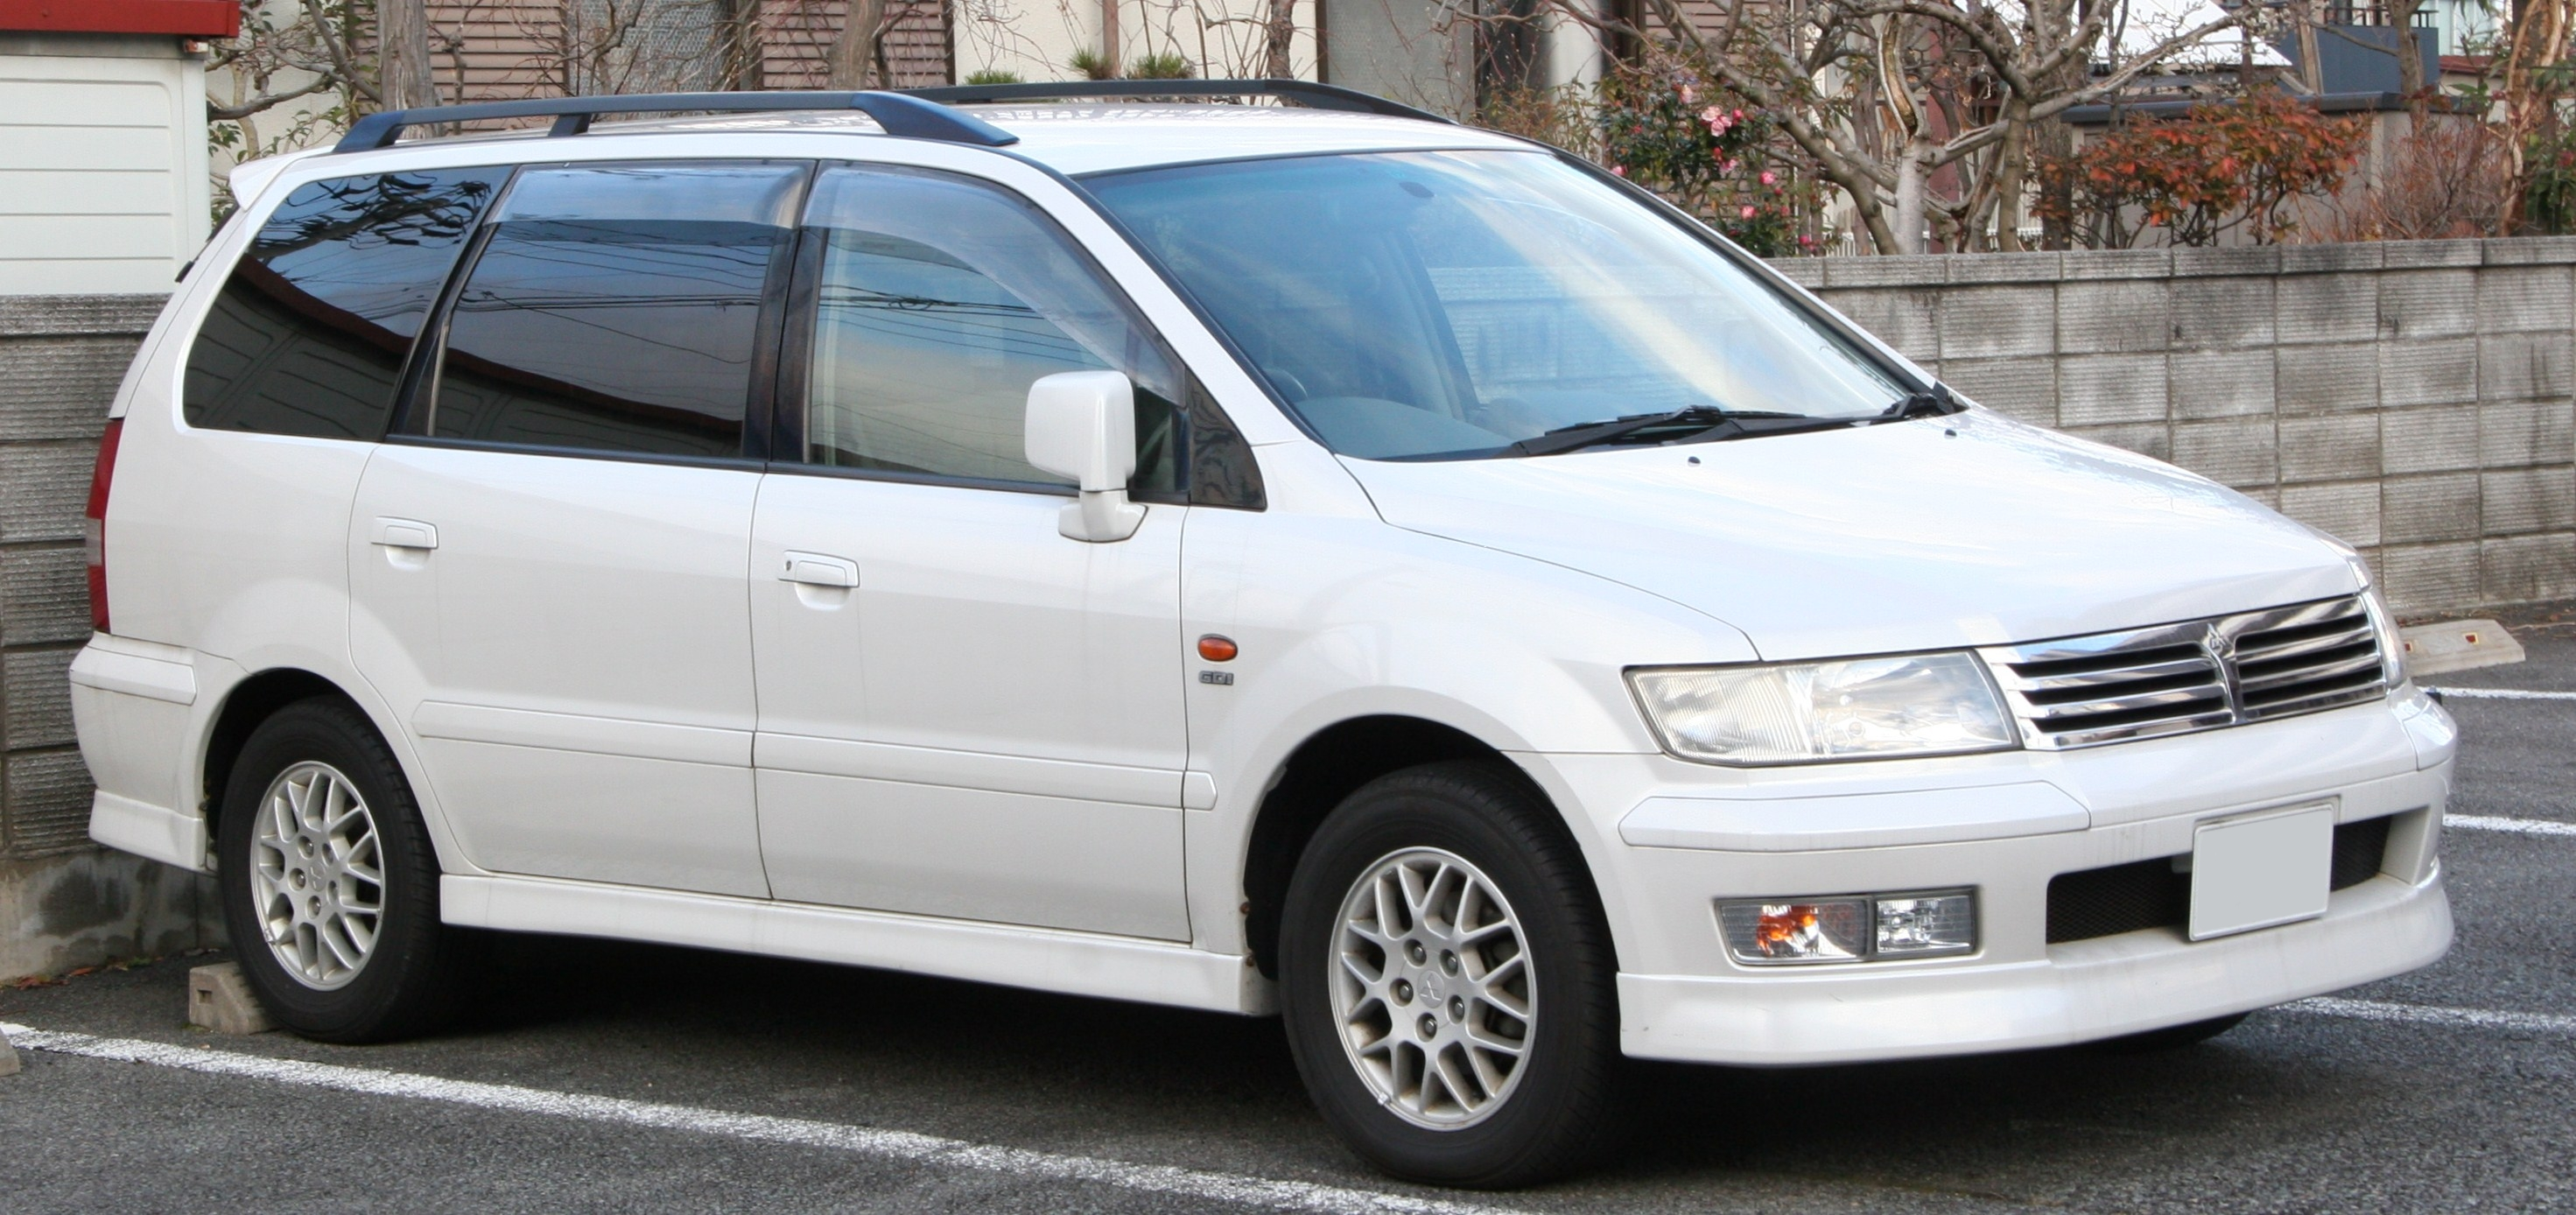 mitsubishi chariot pictures